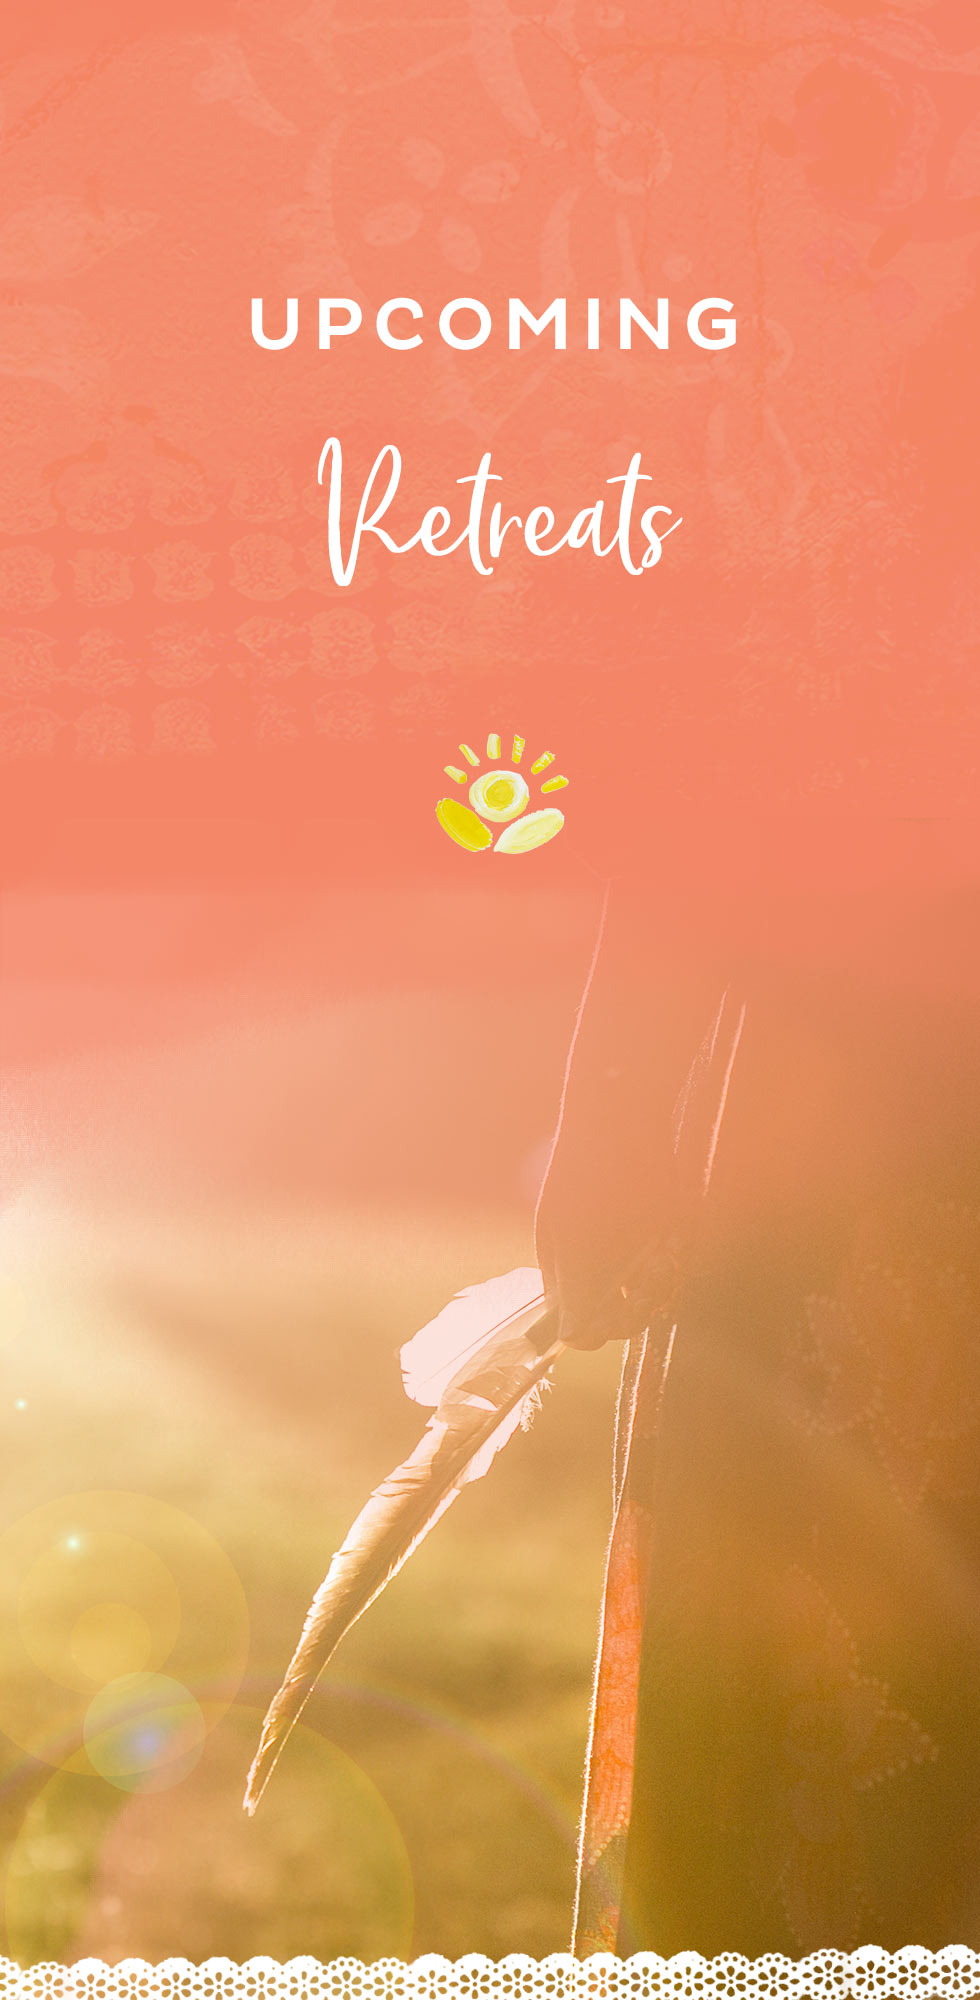 Upcoming retreats